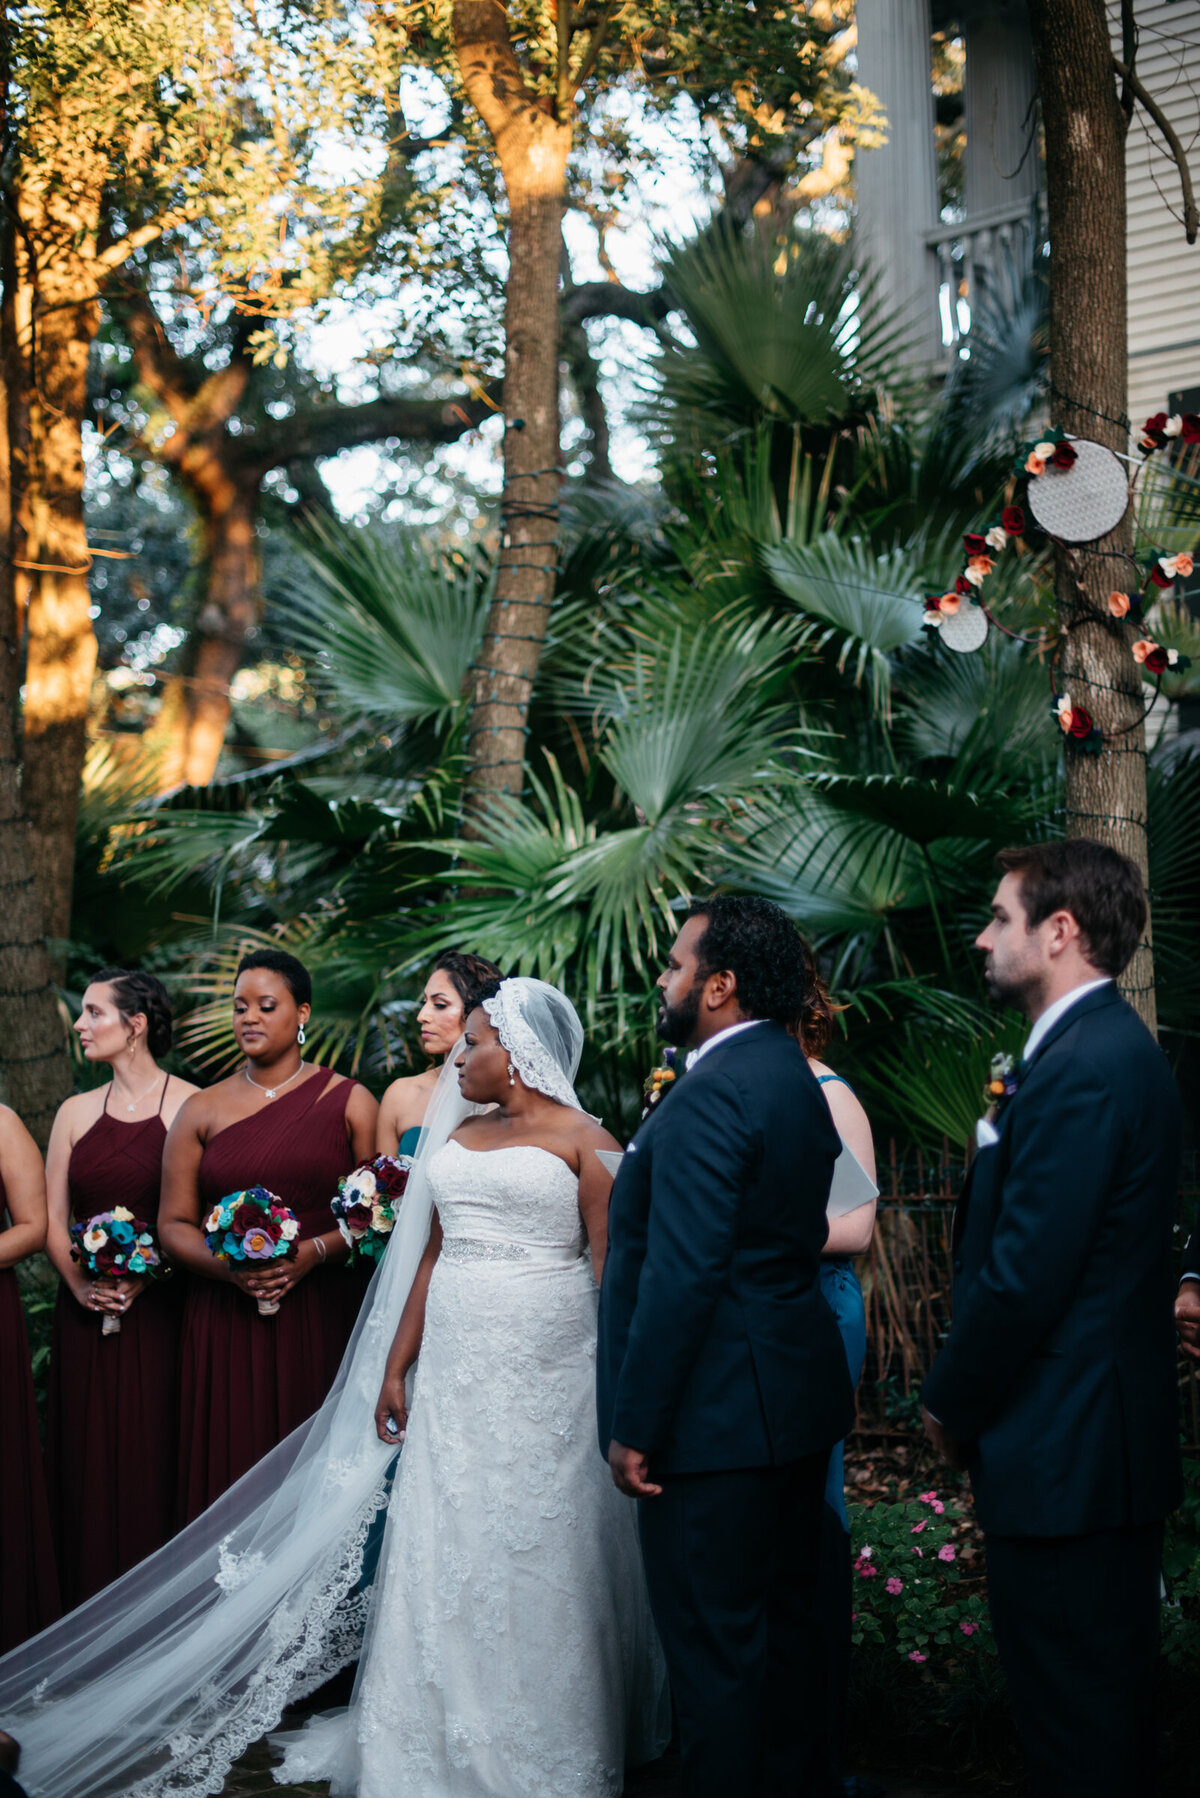 CourtneyDanny-New-Orleans-Wedding-349